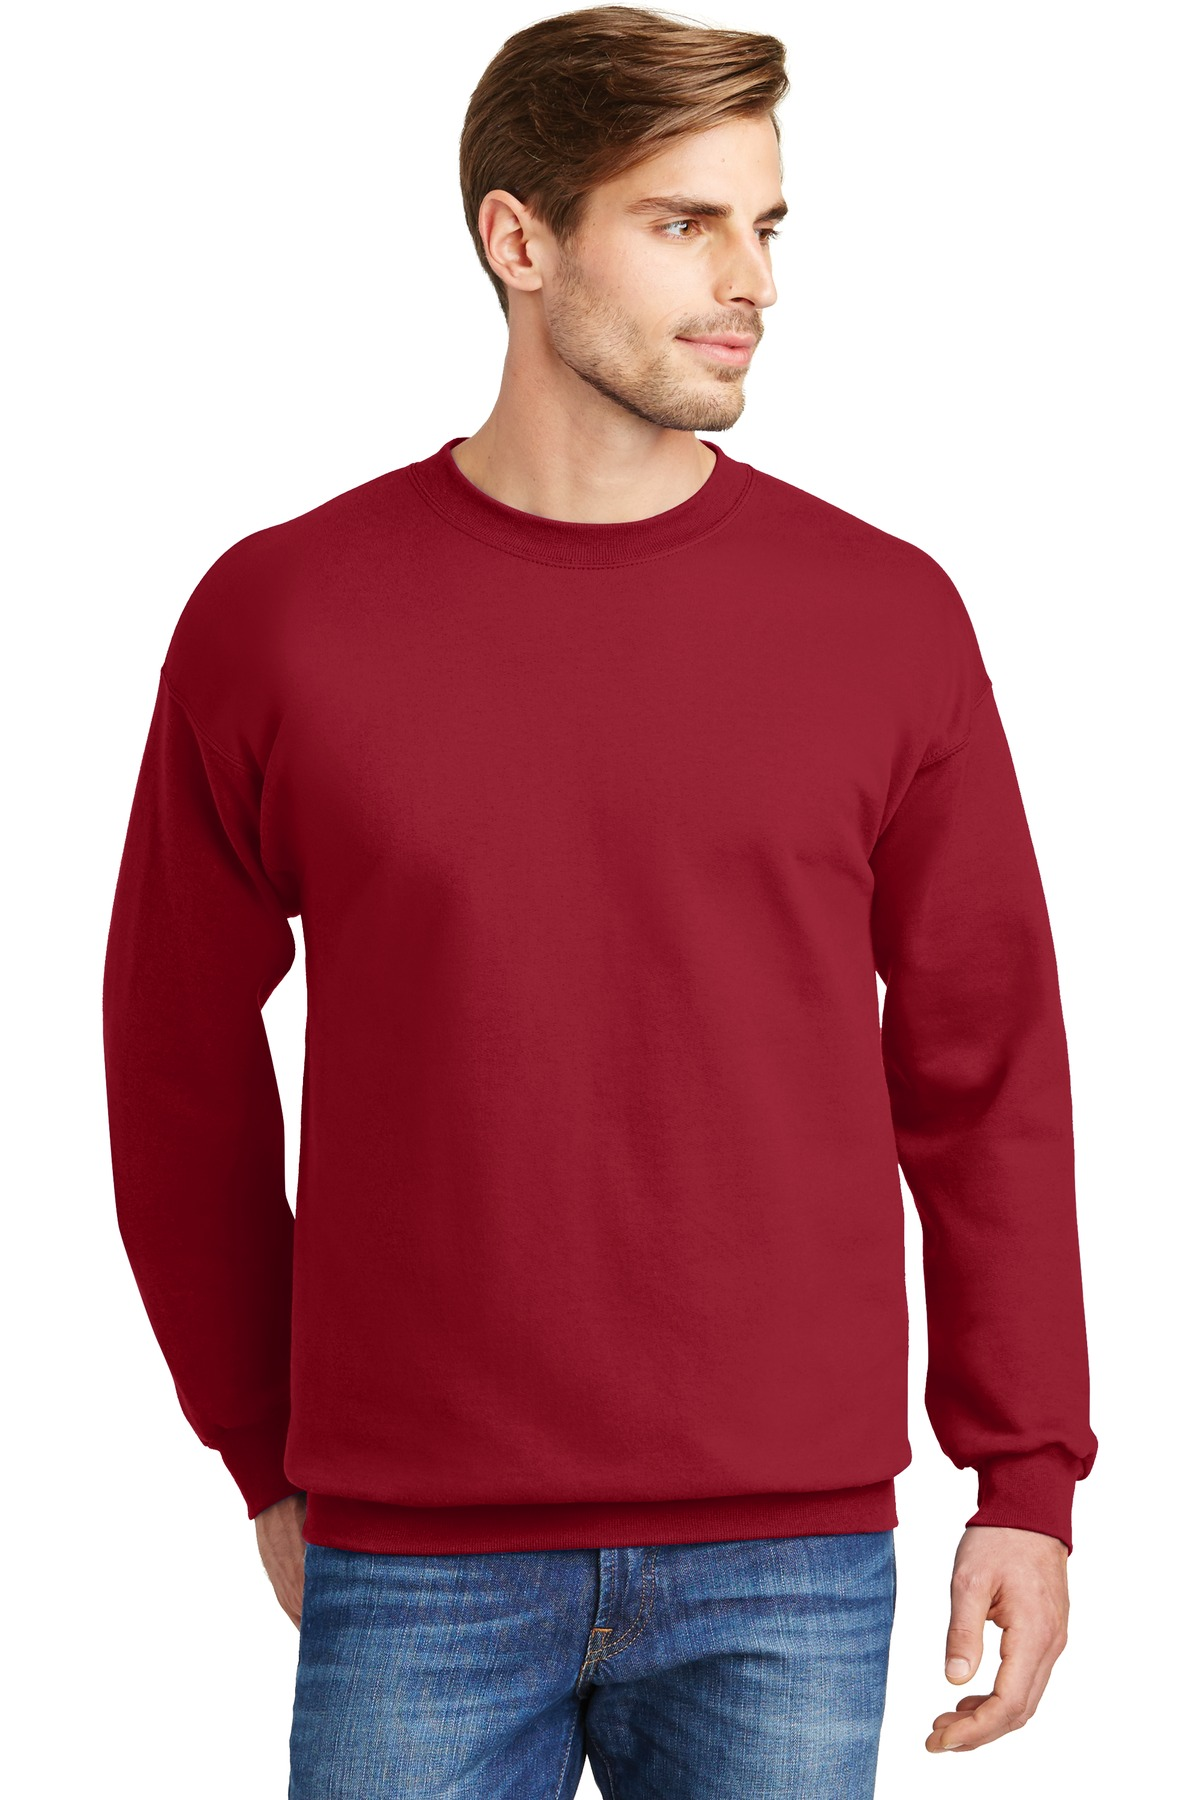 Hanes ®  Ultimate Cotton ®  - Crewneck Sweatshirt.  F260 - Deep Red